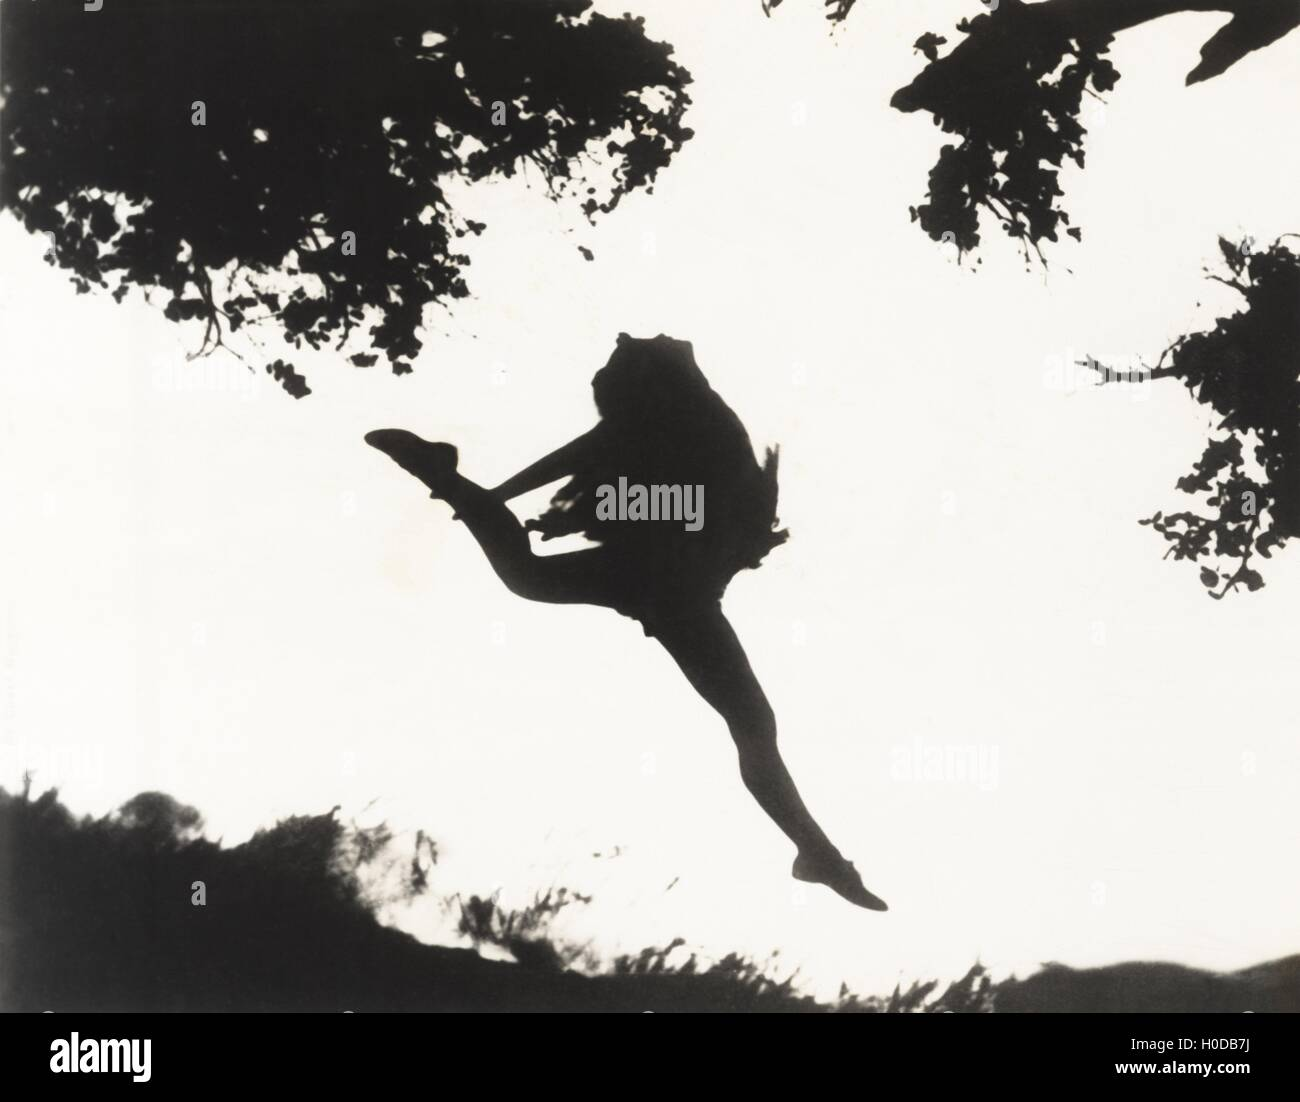 Silhouette of woman leaping in mid-air - Stock Image